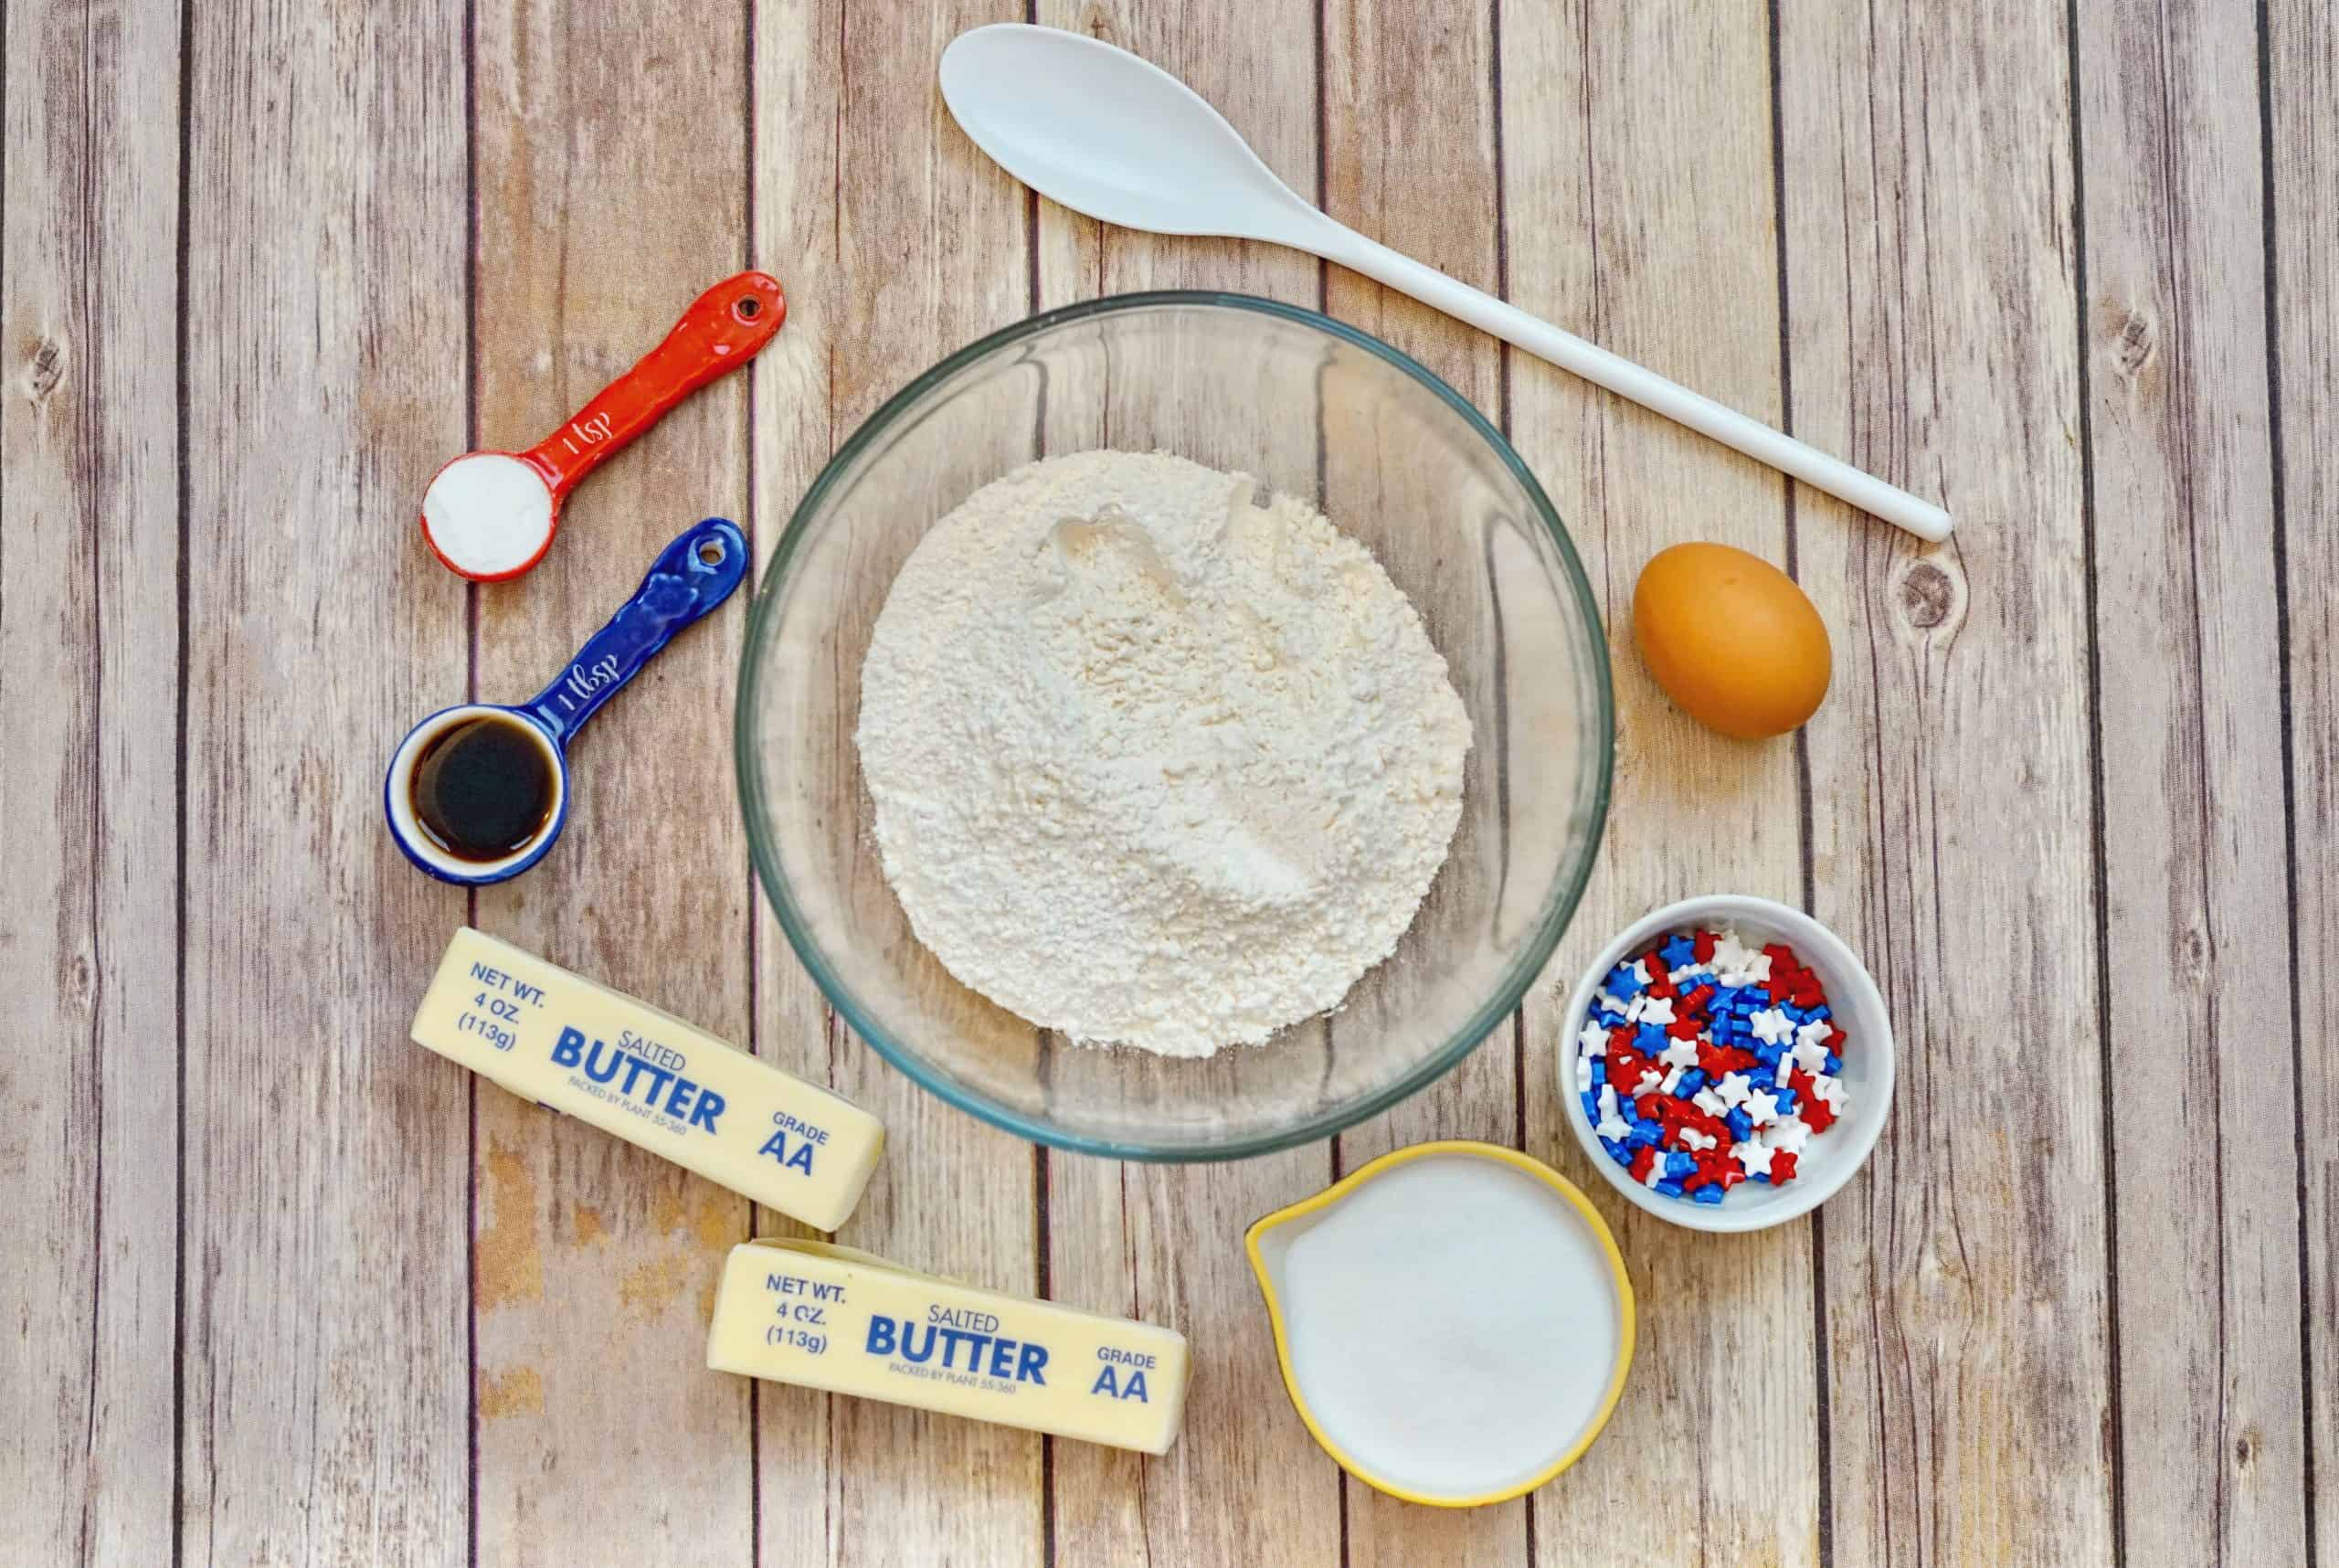 ingredients for making patriotic sugar cookies on wooden table